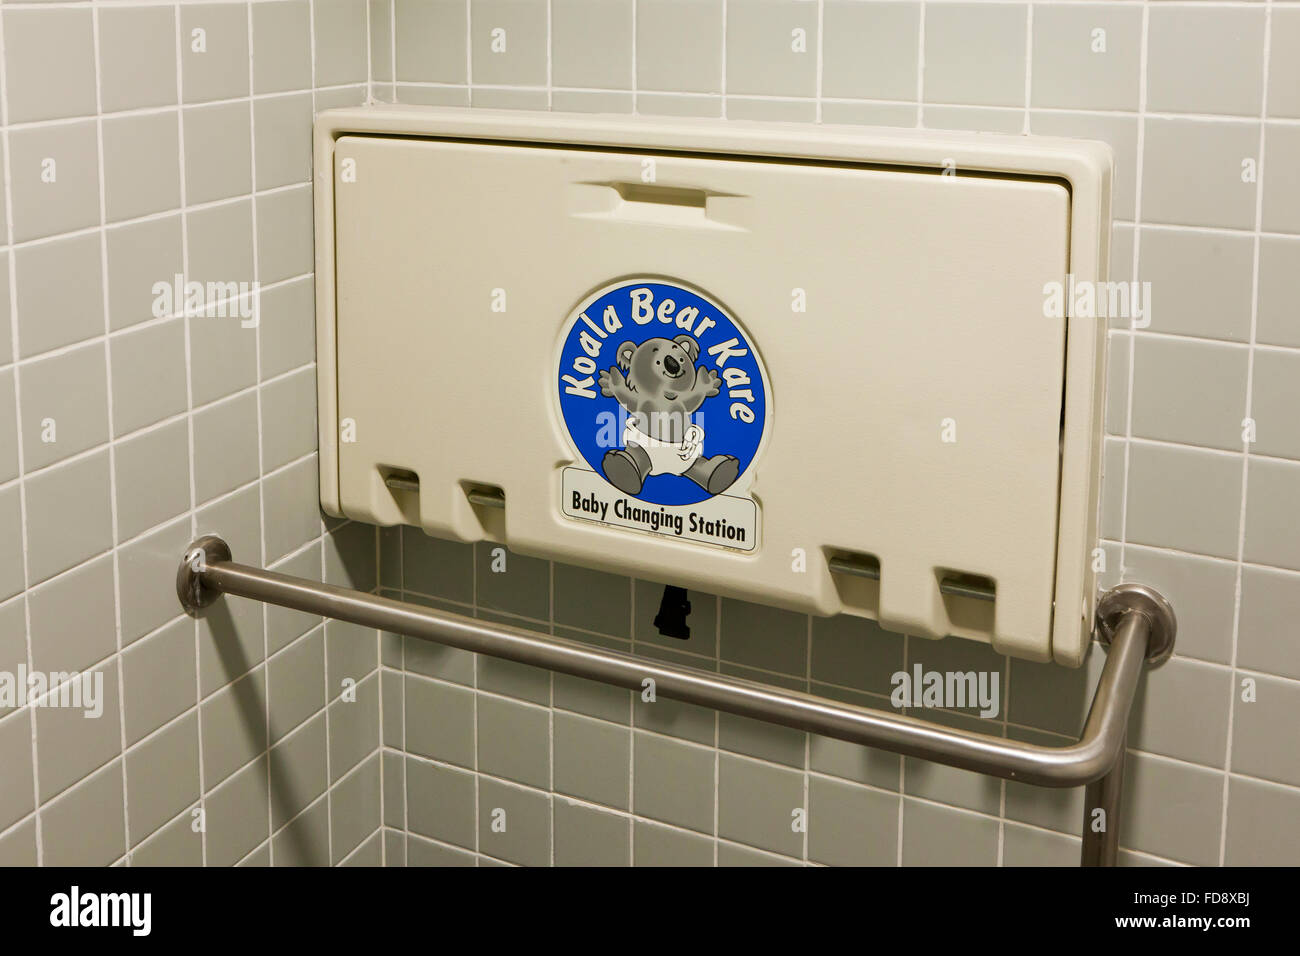 folding baby changing table in public restroom  usa stock photo  - folding baby changing table in public restroom  usa